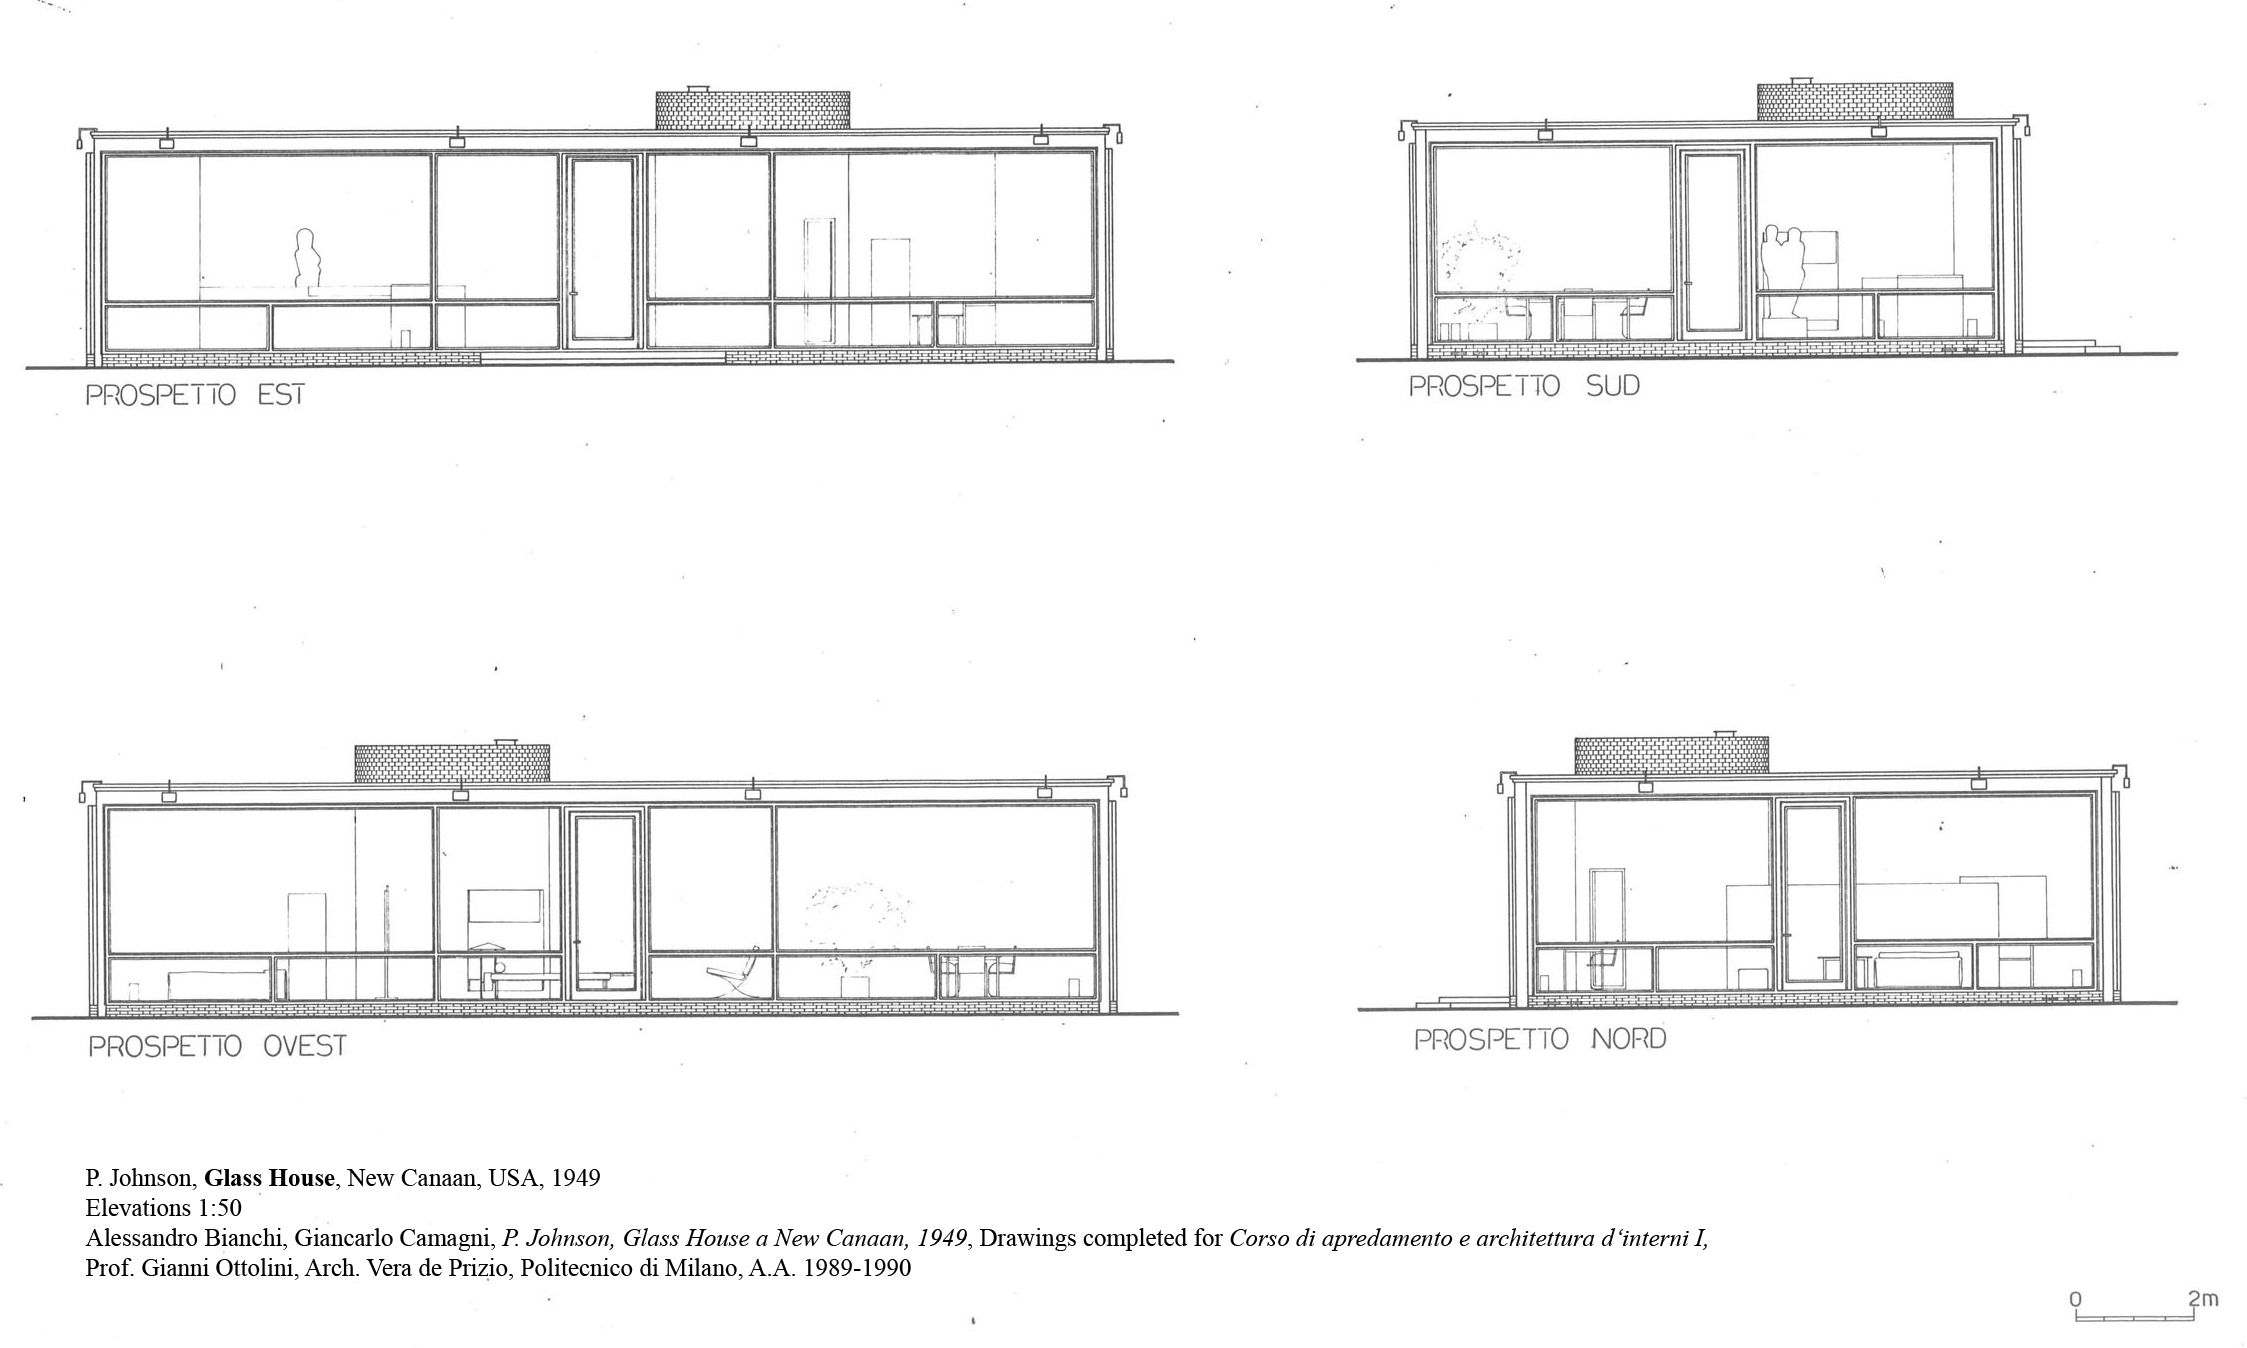 Glass House Philip Johnson Plan philip johnson glass house canaan usa 1949 atlas of